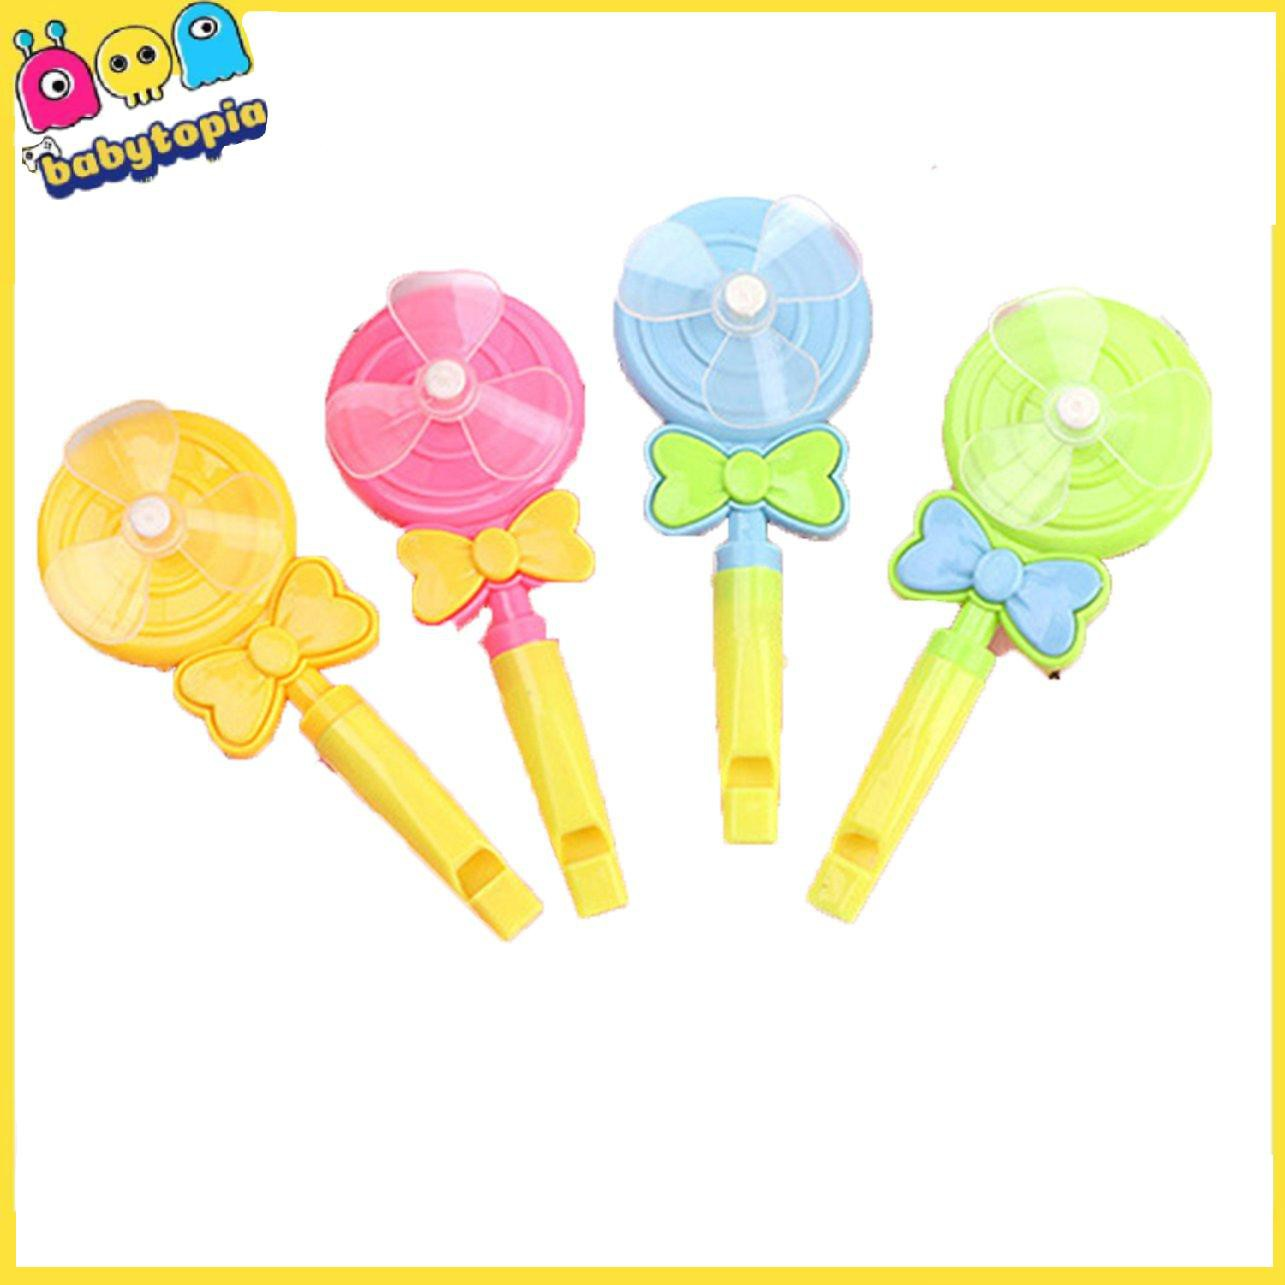 Lollipop windmill whistle windmill blowing toy children's toy small gifts kindergarten gifts children's day gifts